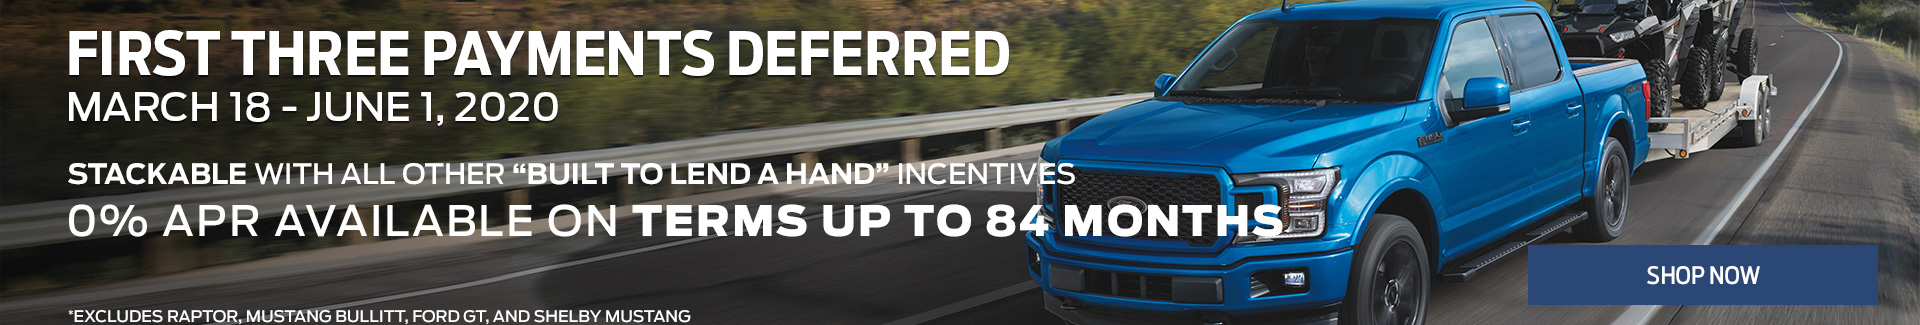 Ford Deferred Payments Srp 3